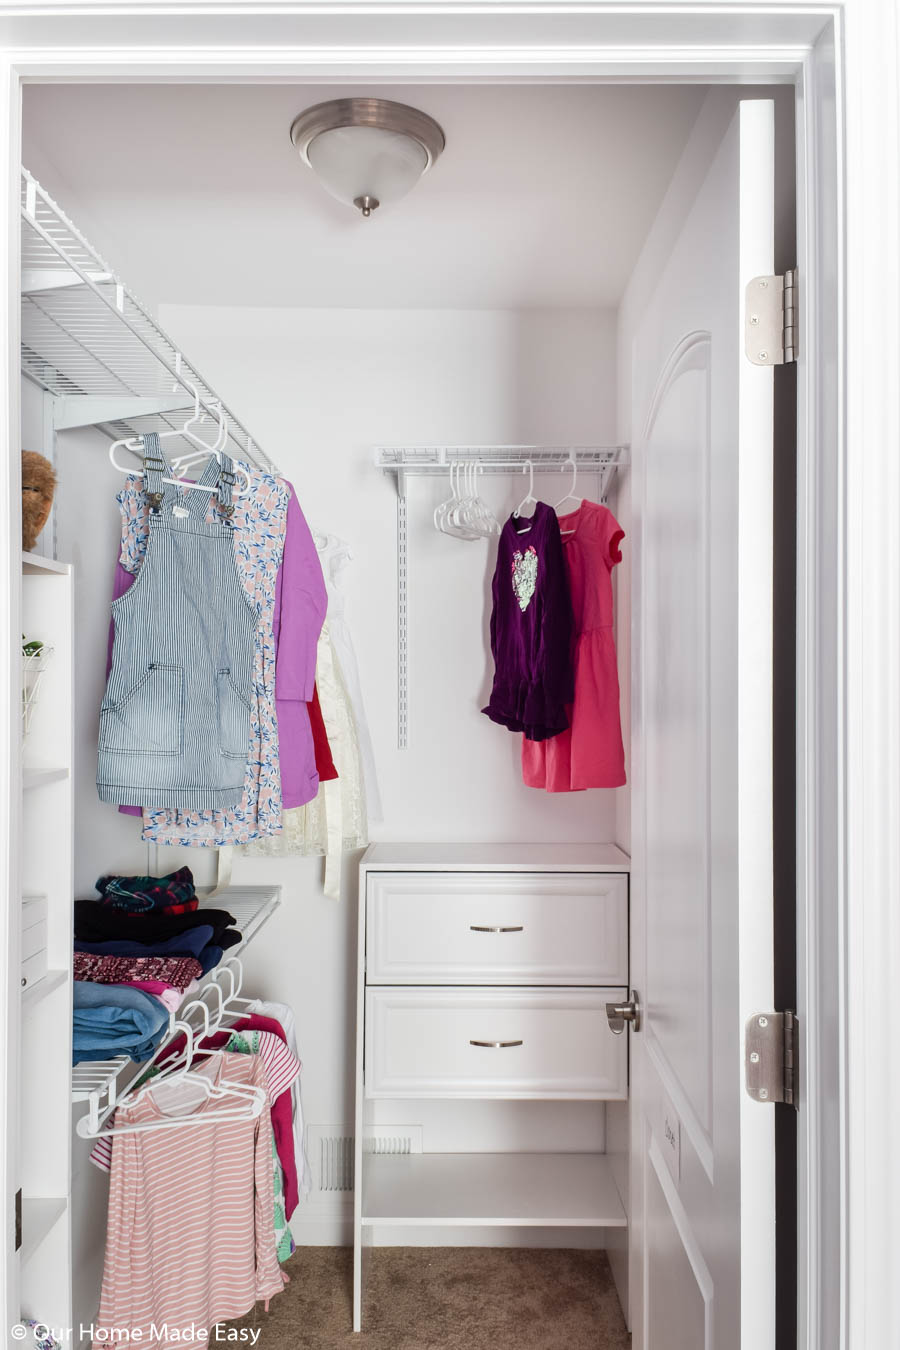 Decluttering your closet it a great place to start when you're preparing to sell your home